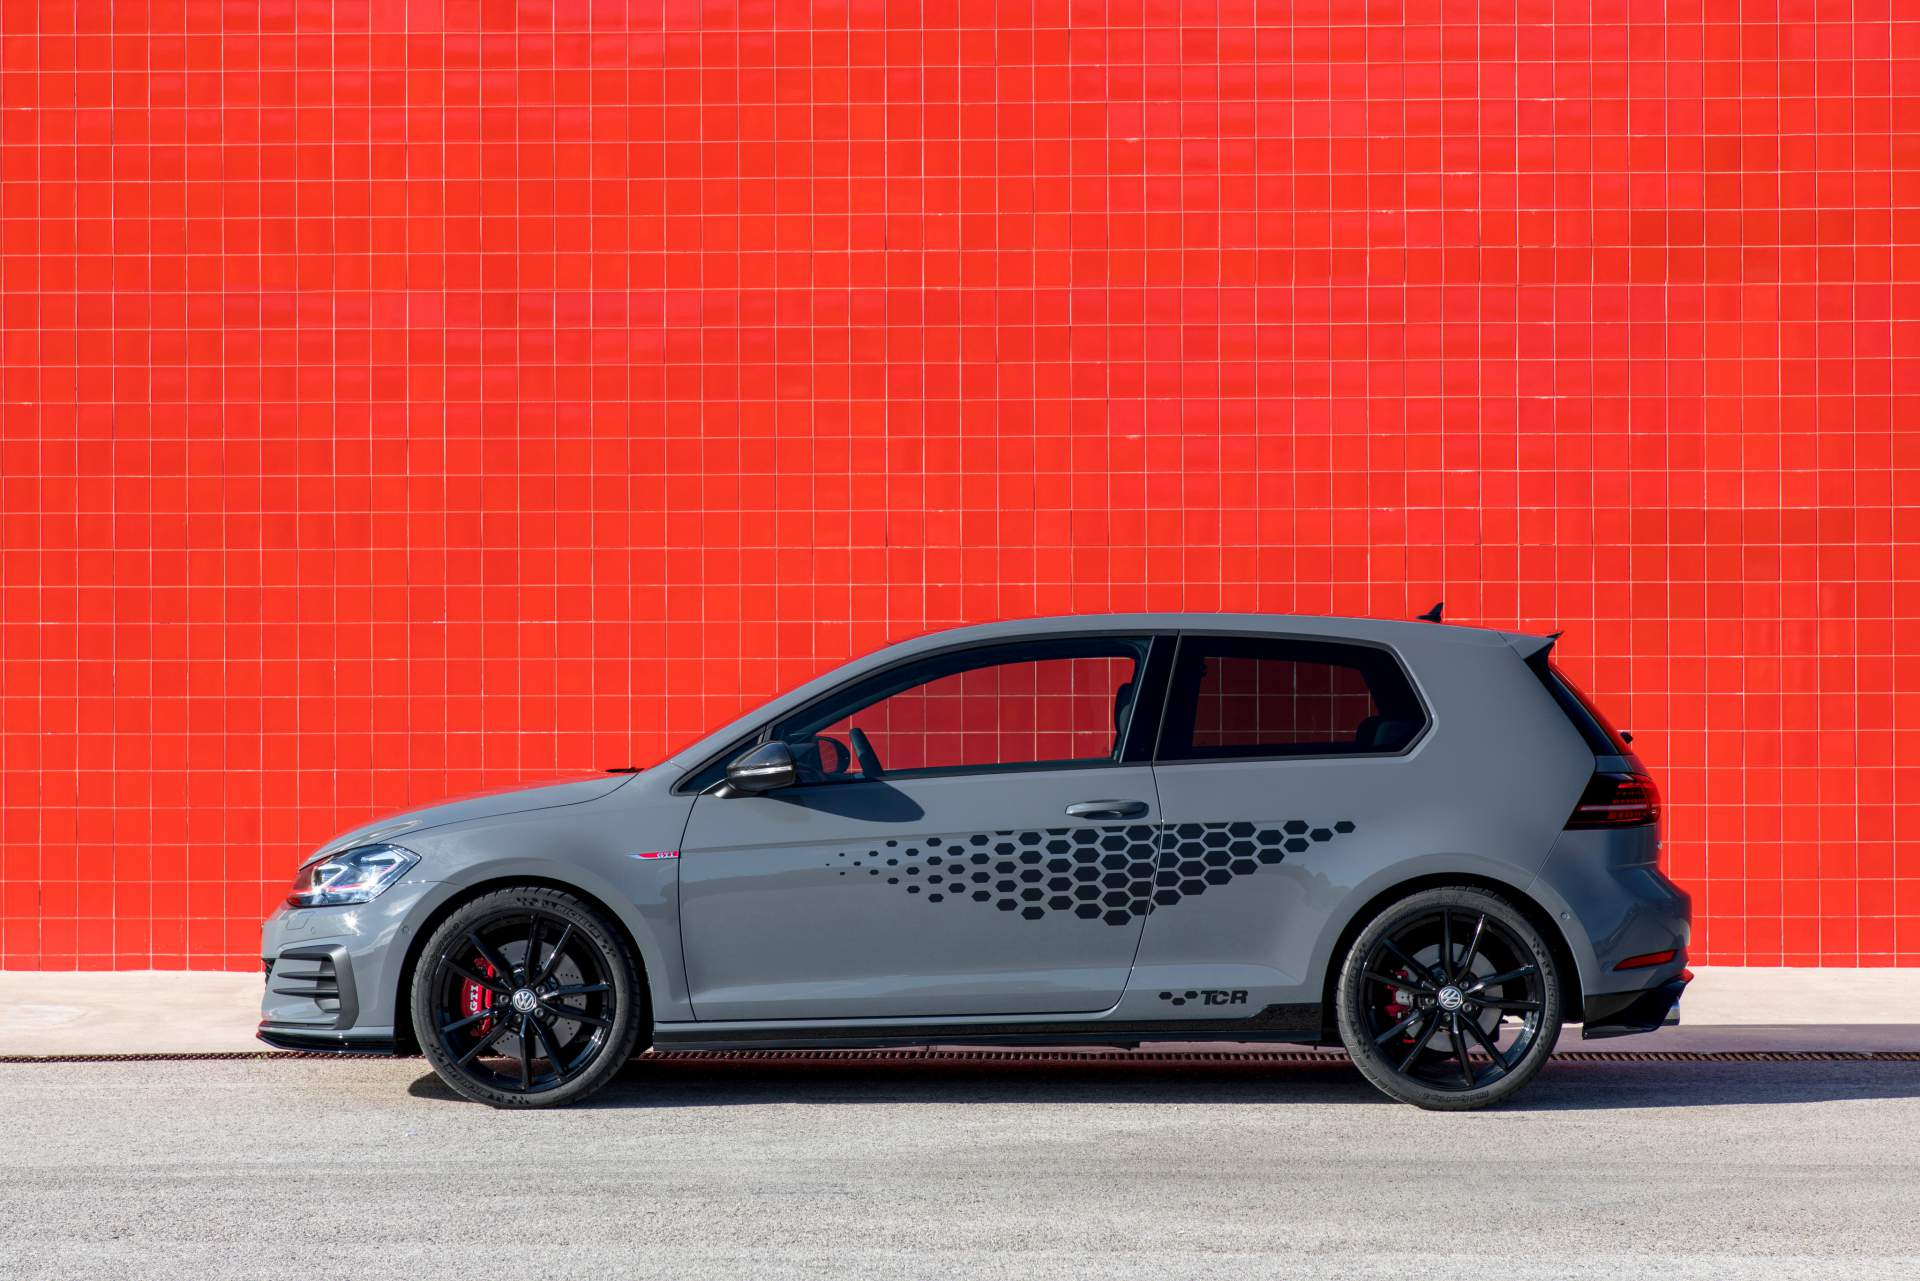 2019 volkswagen golf gti tcr has the genes of a race car. Black Bedroom Furniture Sets. Home Design Ideas